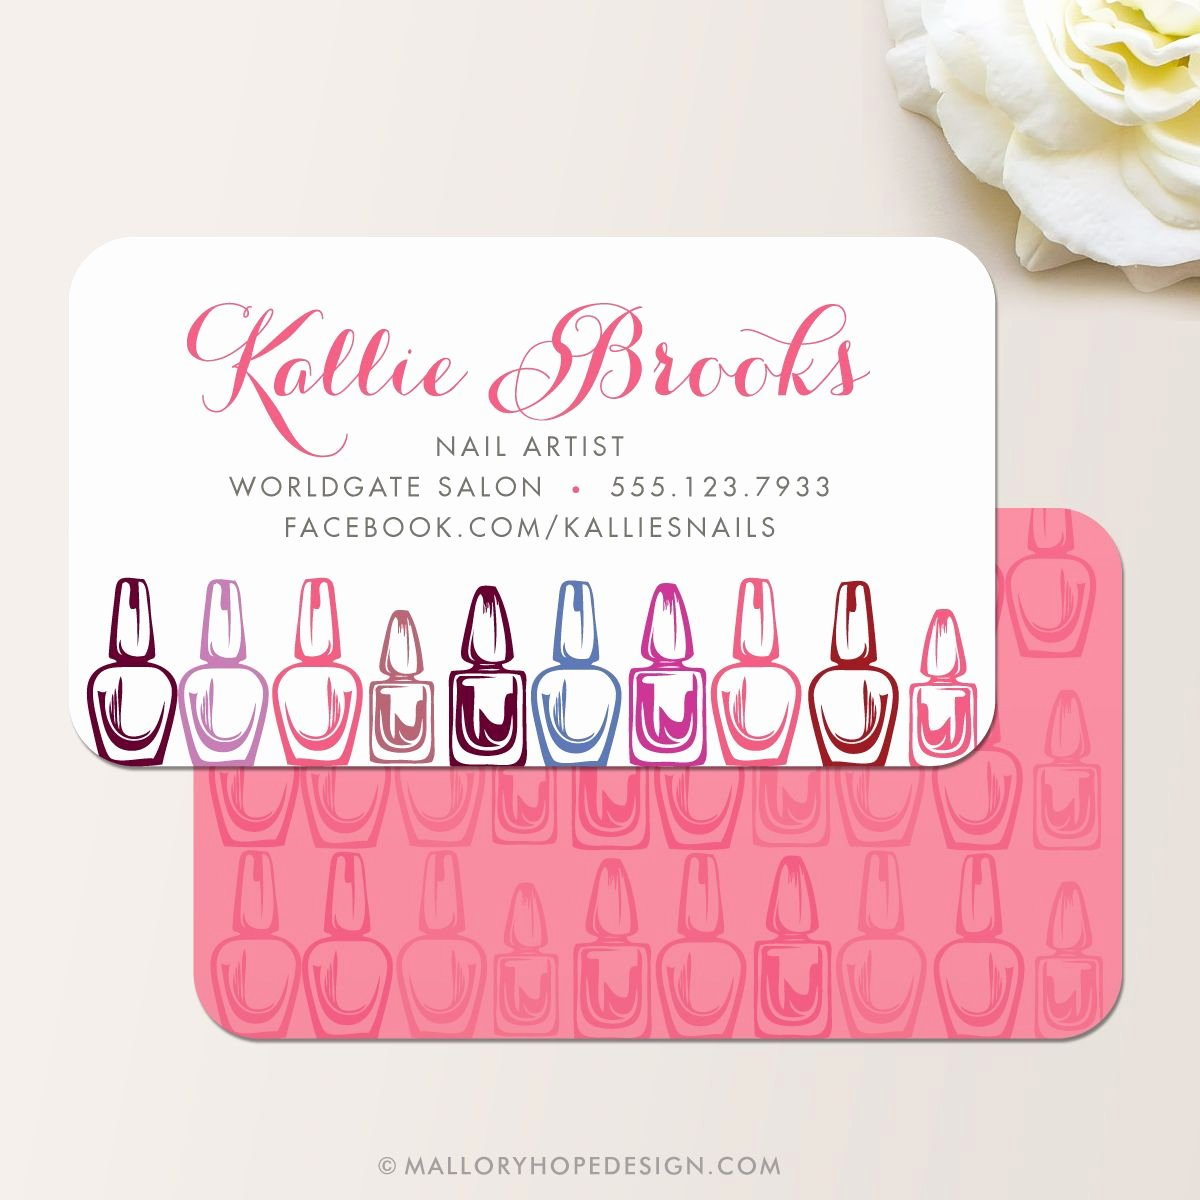 Nail Tech Business Cards Beautiful Nail Artist Business Card Business Cards